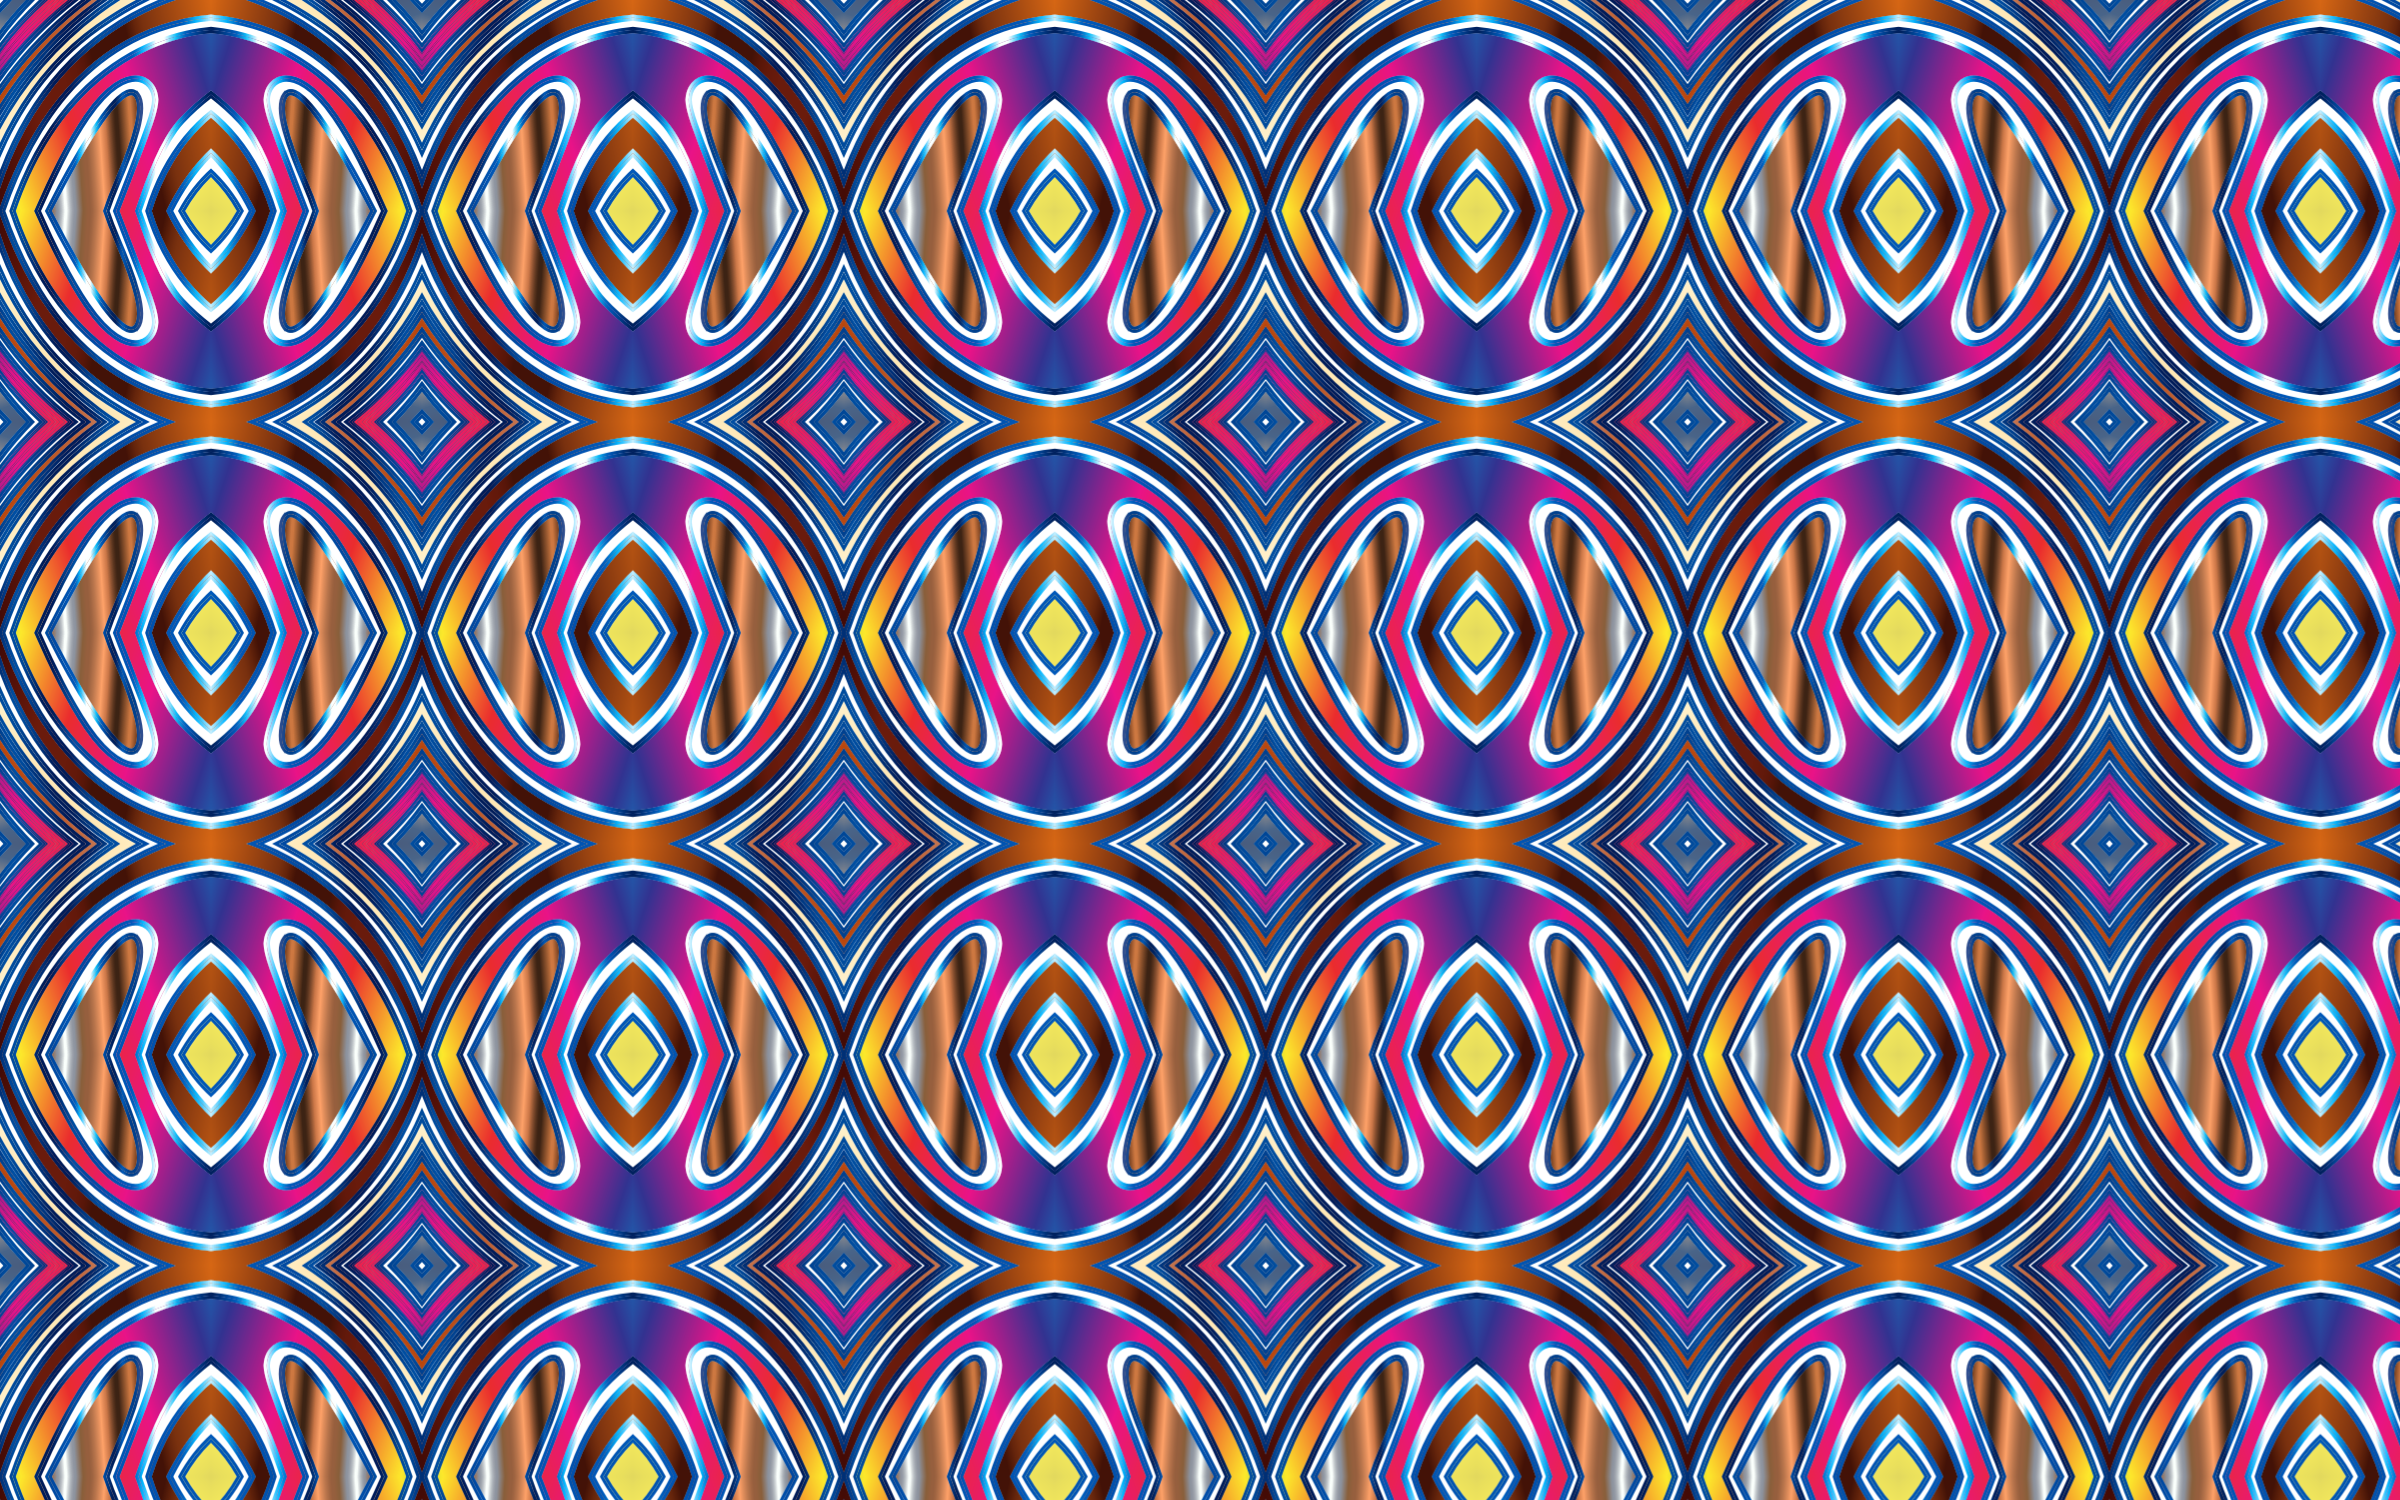 Seamless Pattern 19 by GDJ